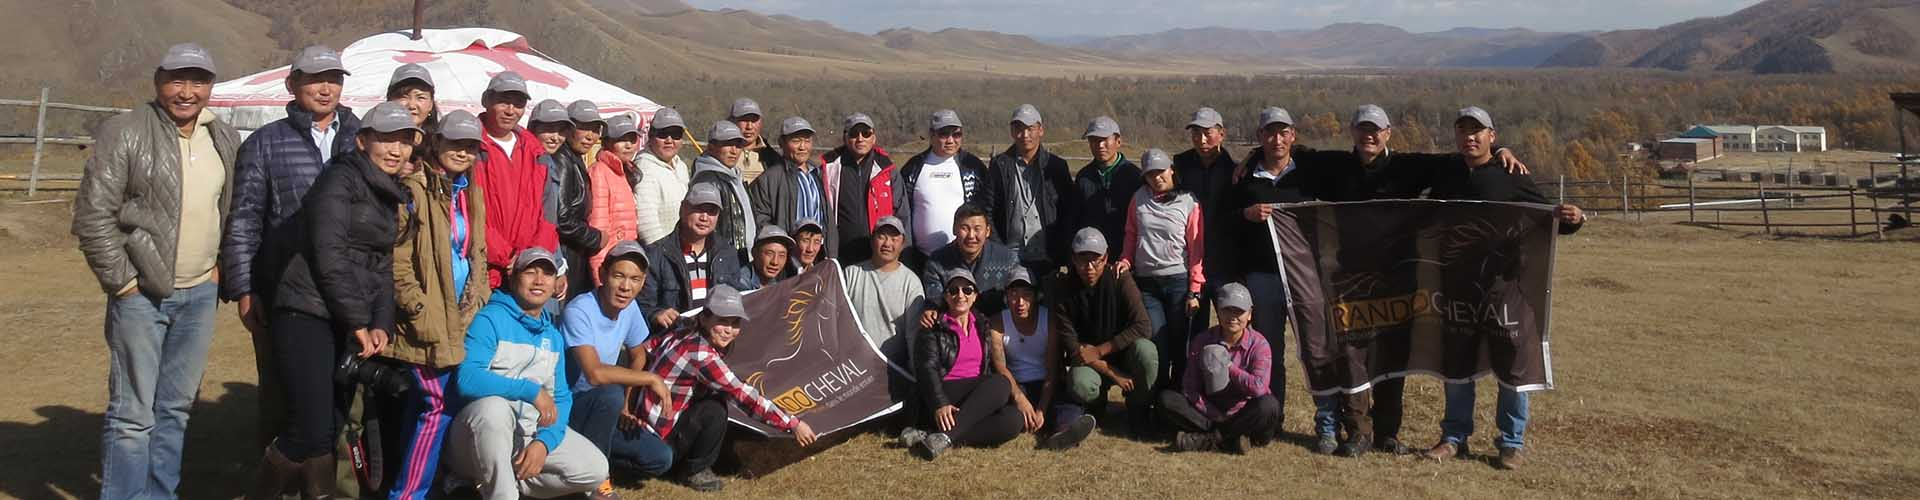 Absolu Voyages Mongolie